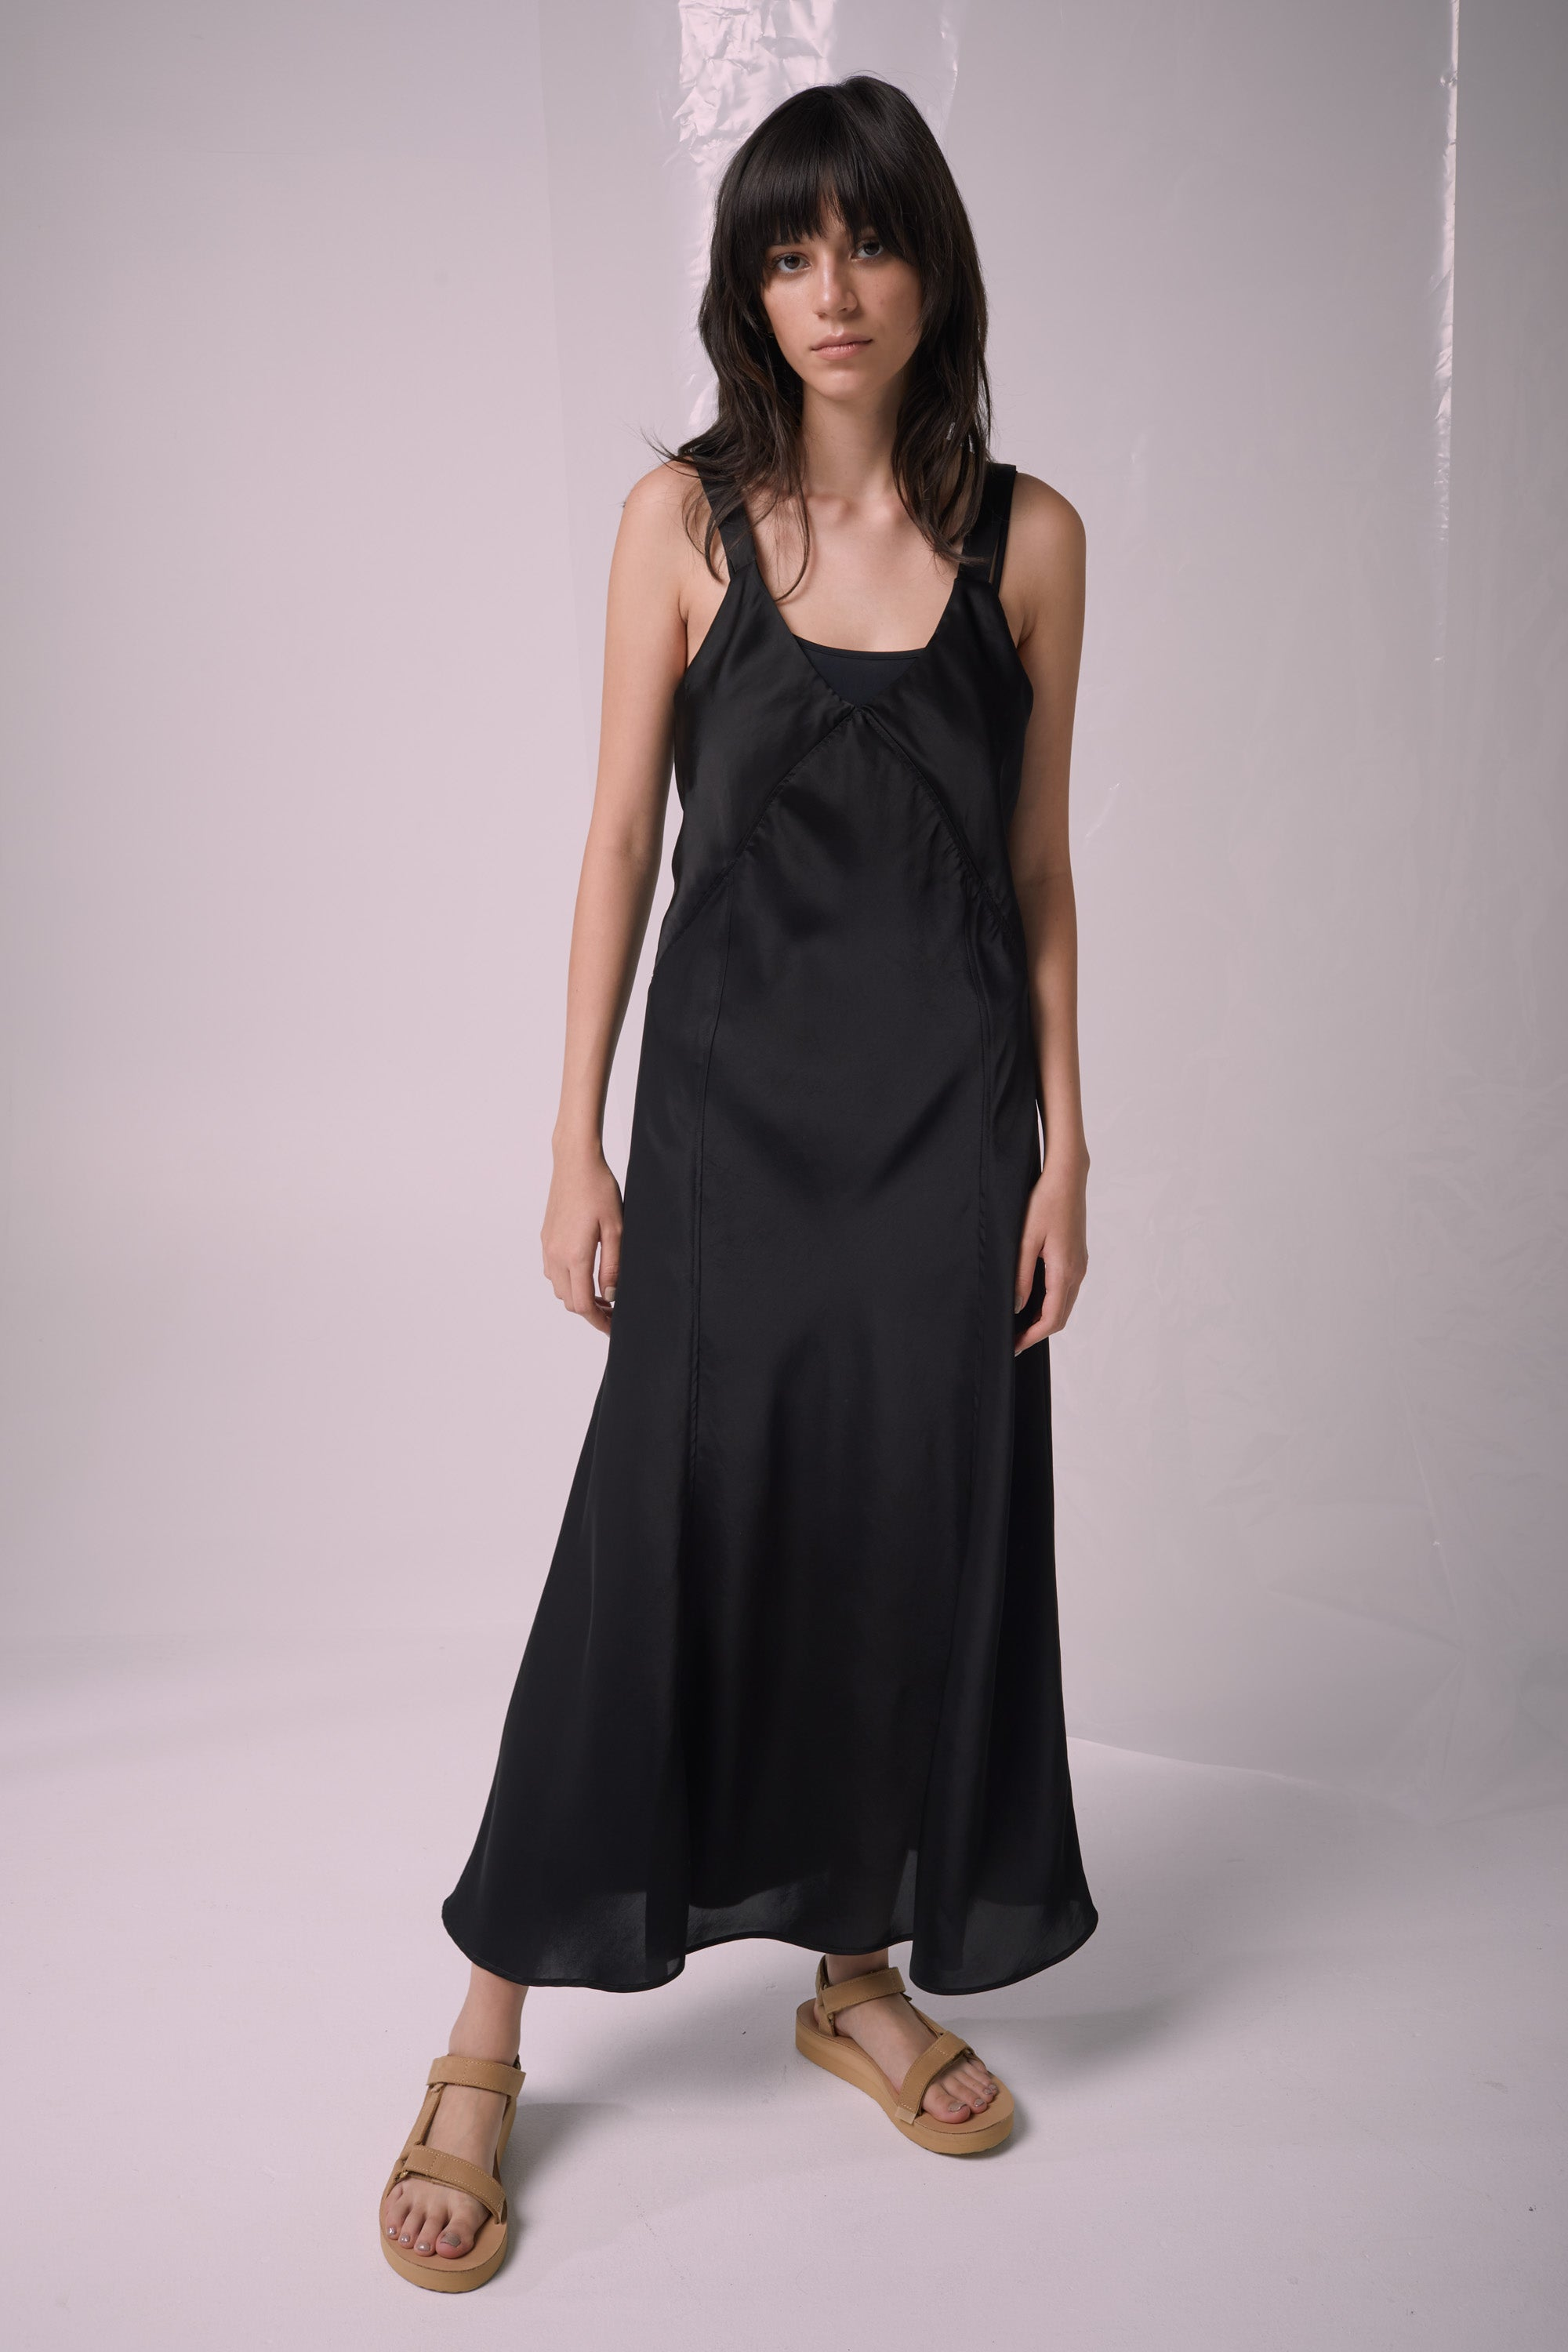 Ricochet NZ Fashion Designer Clothing Boutique SS19  Made in NZ Atmosphere Dress Black